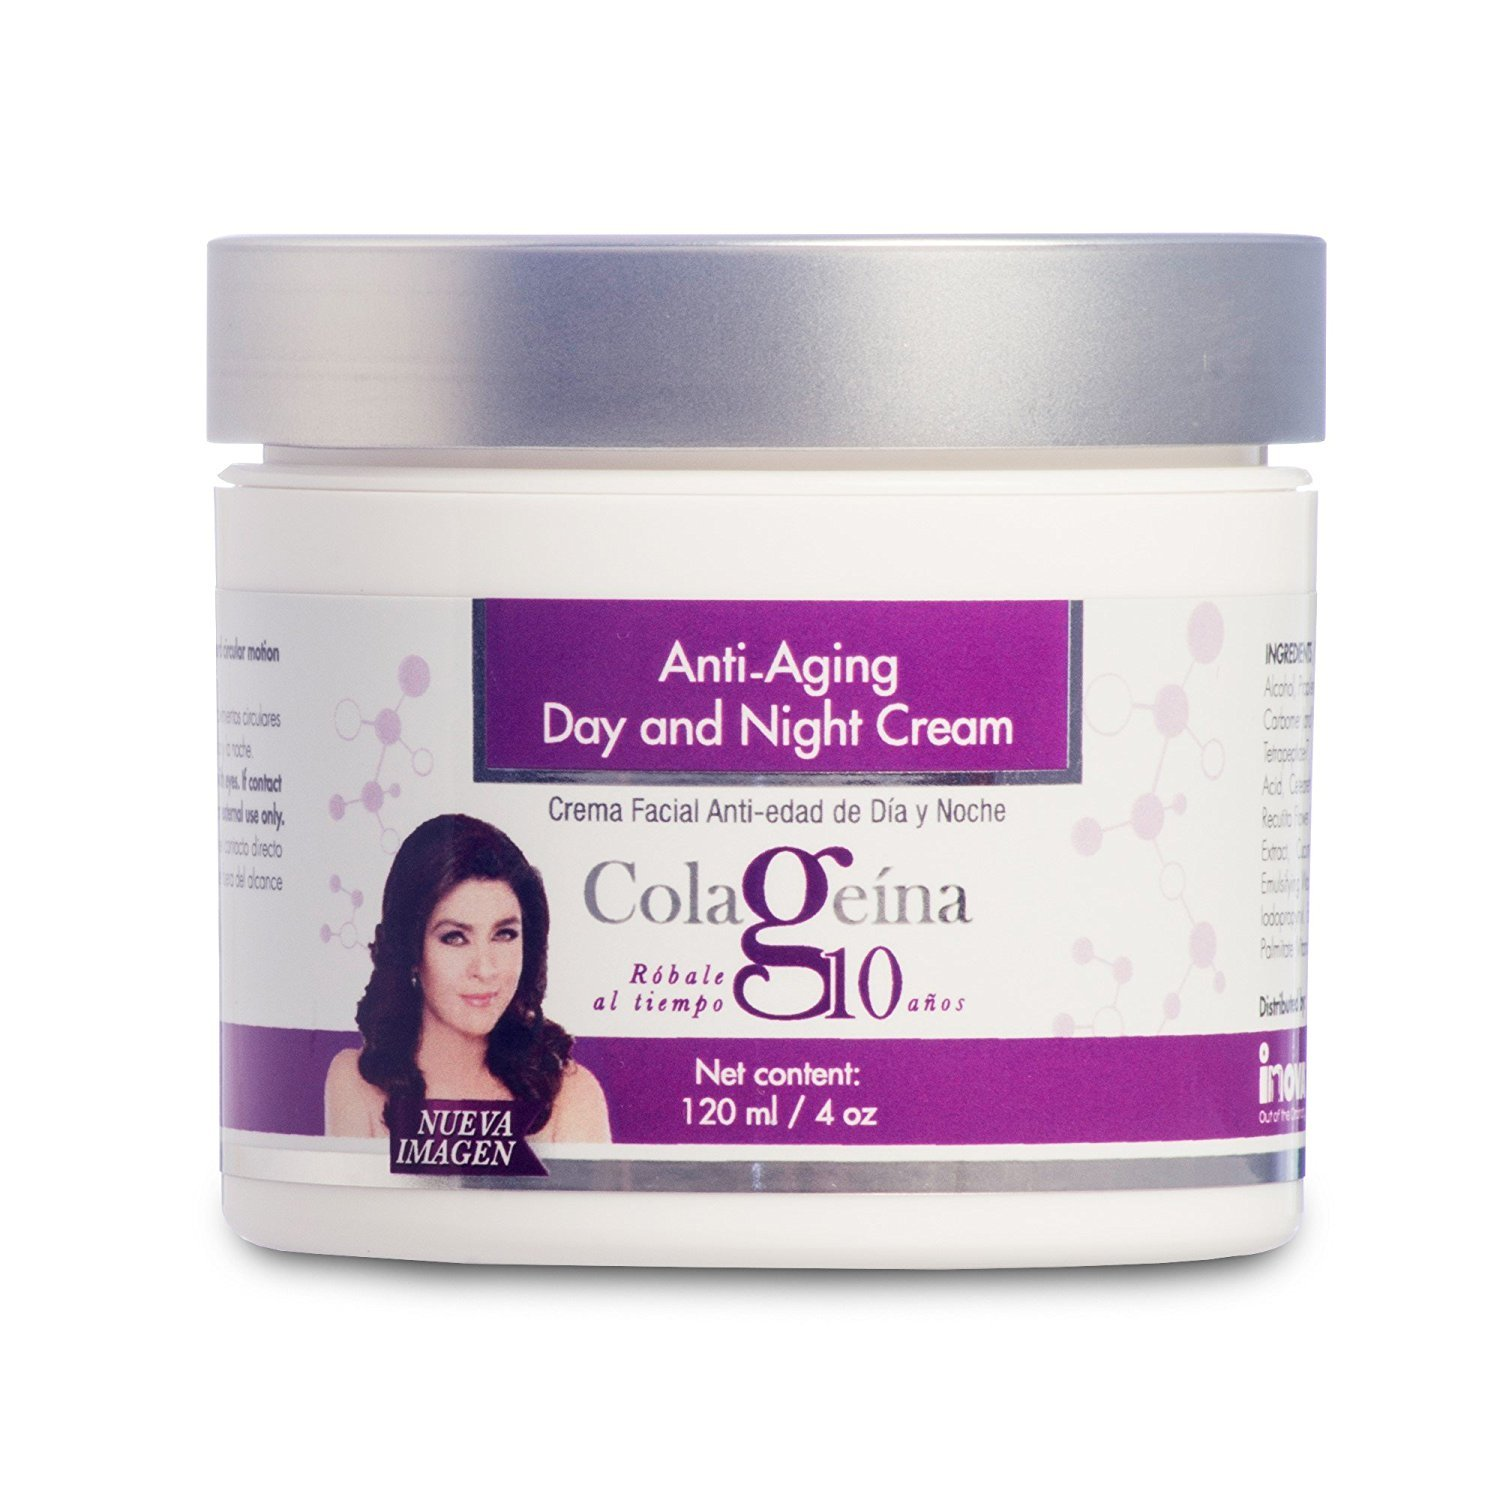 COLAGEINA 10 Anti-aging Day and Night Cream Skin Care Treatment for a younger look